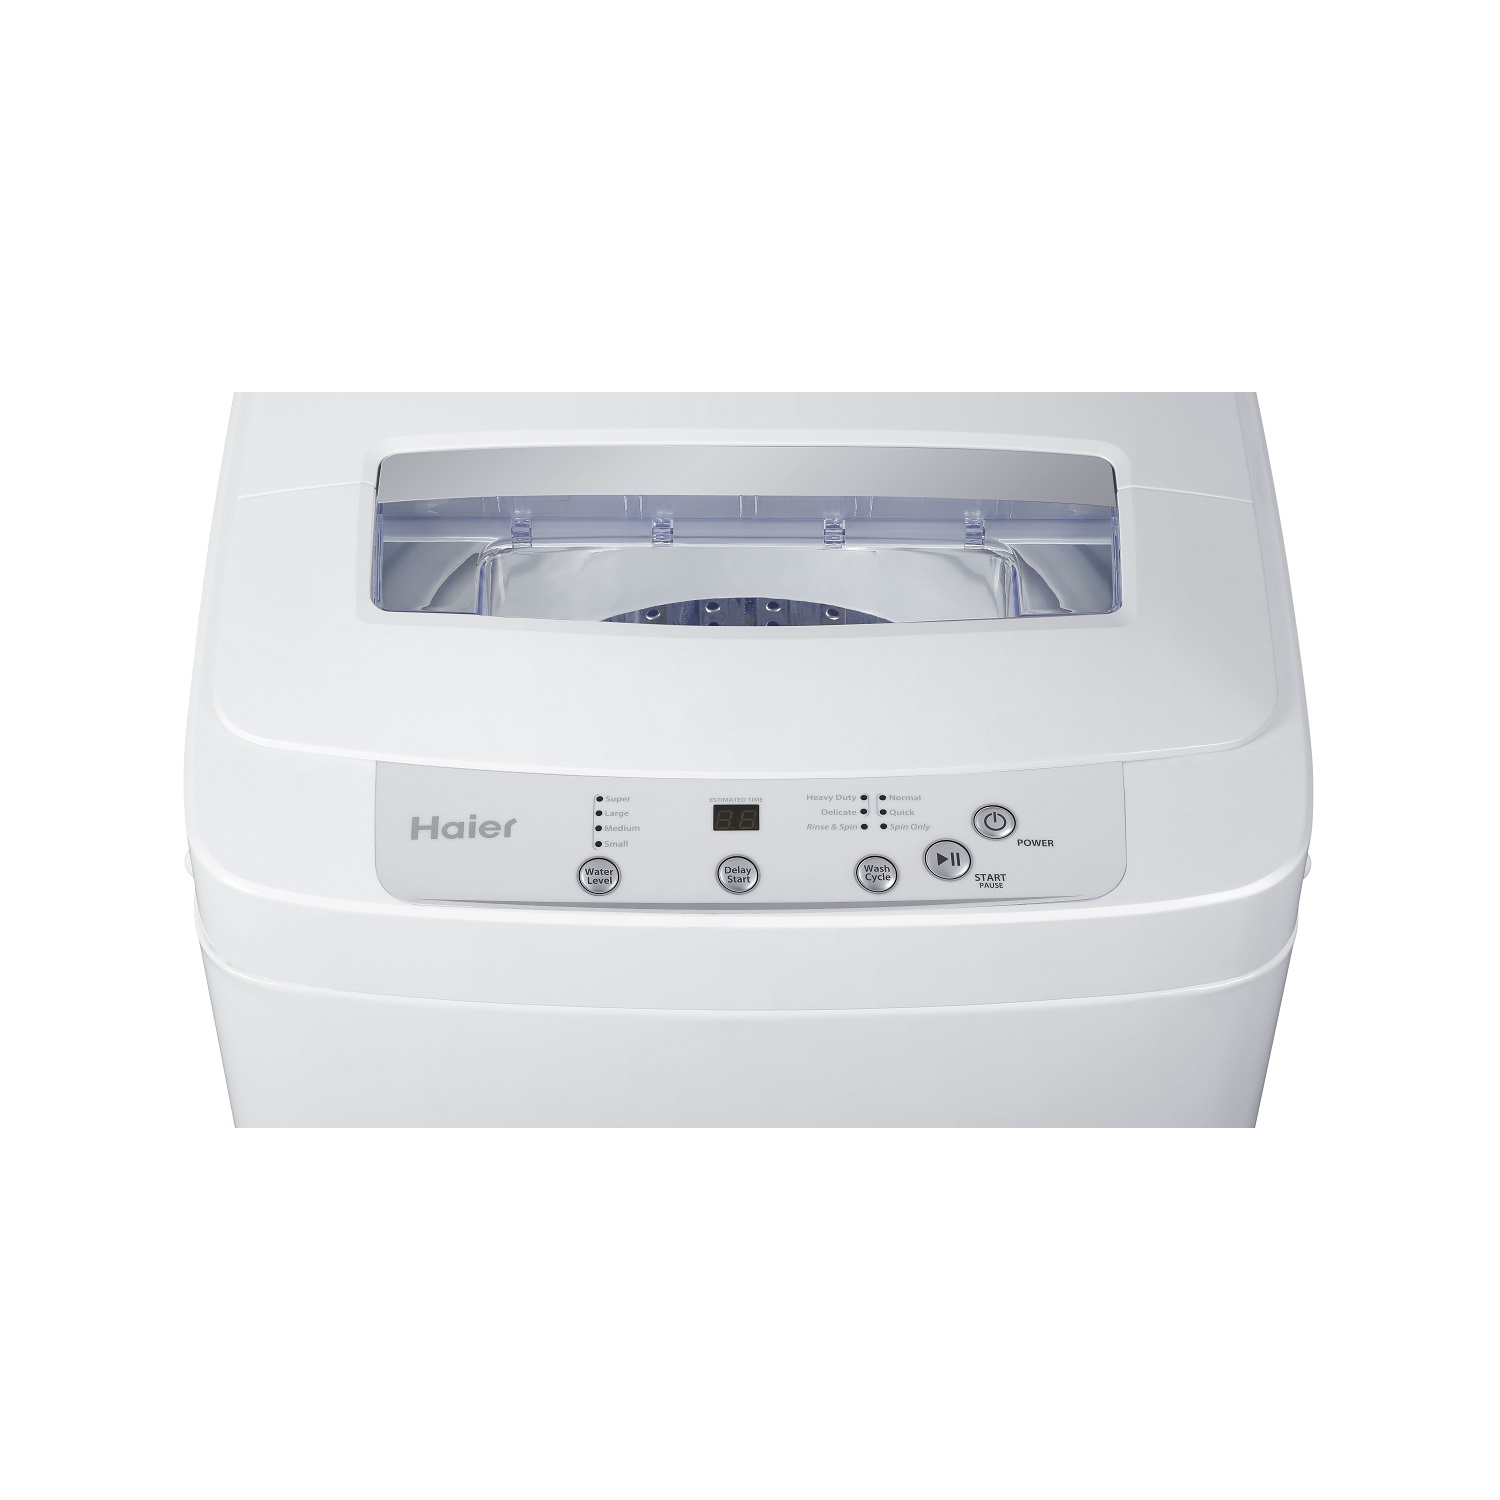 Ventless washer dryer combo walmart dryer vent cleaning for 110v window air conditioner lowes